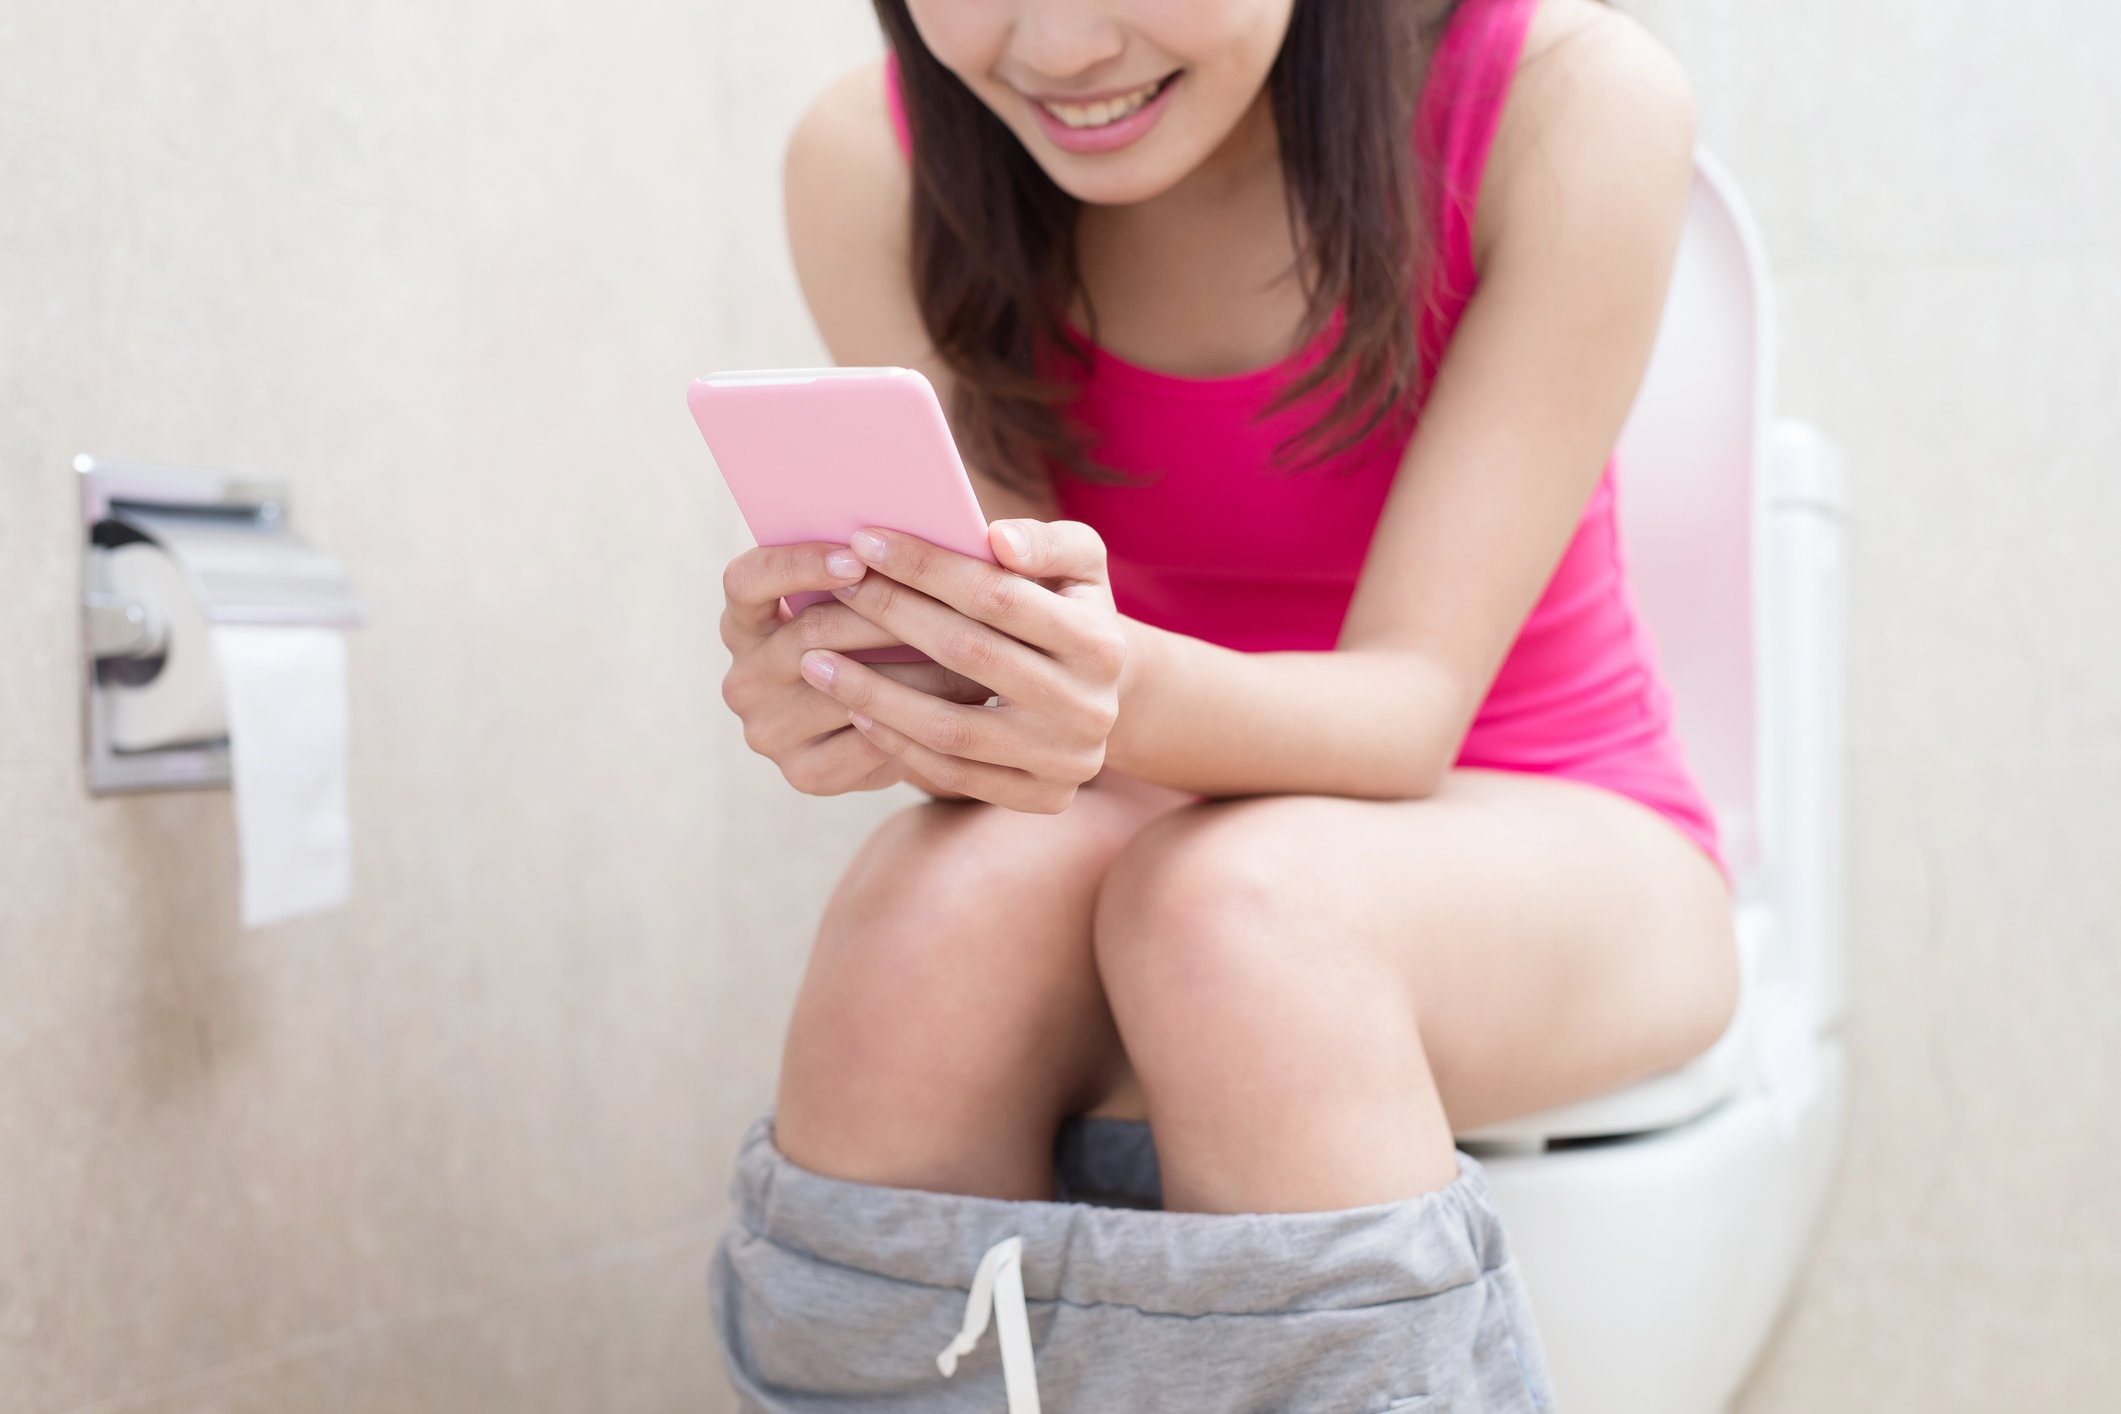 Girl spending excessive time in the bathroom using her phone